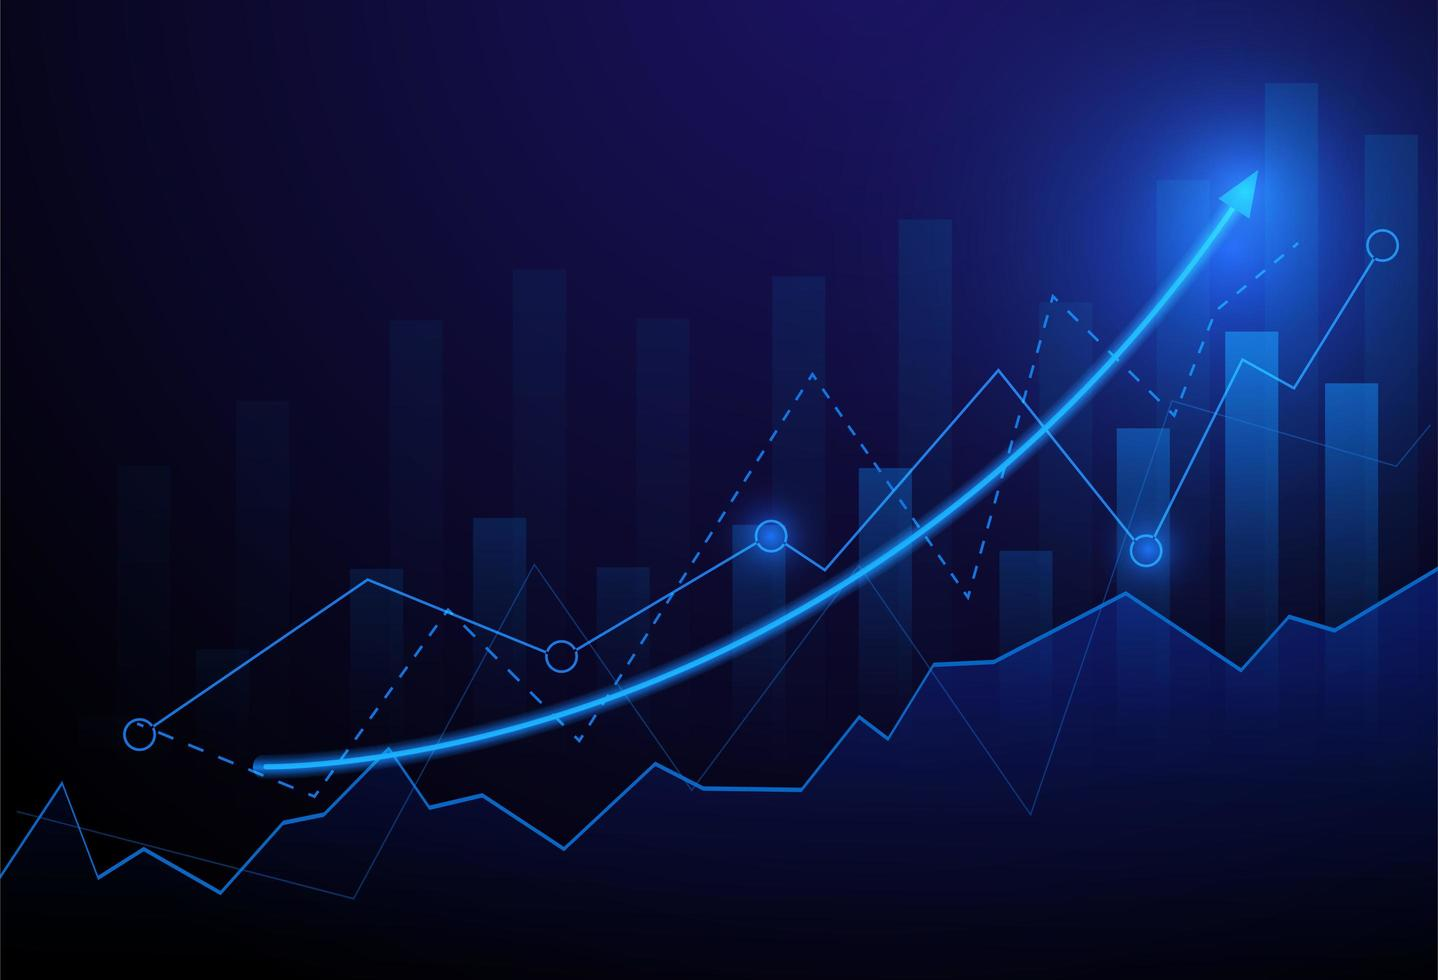 Business candle stick graph chart of stock market vector